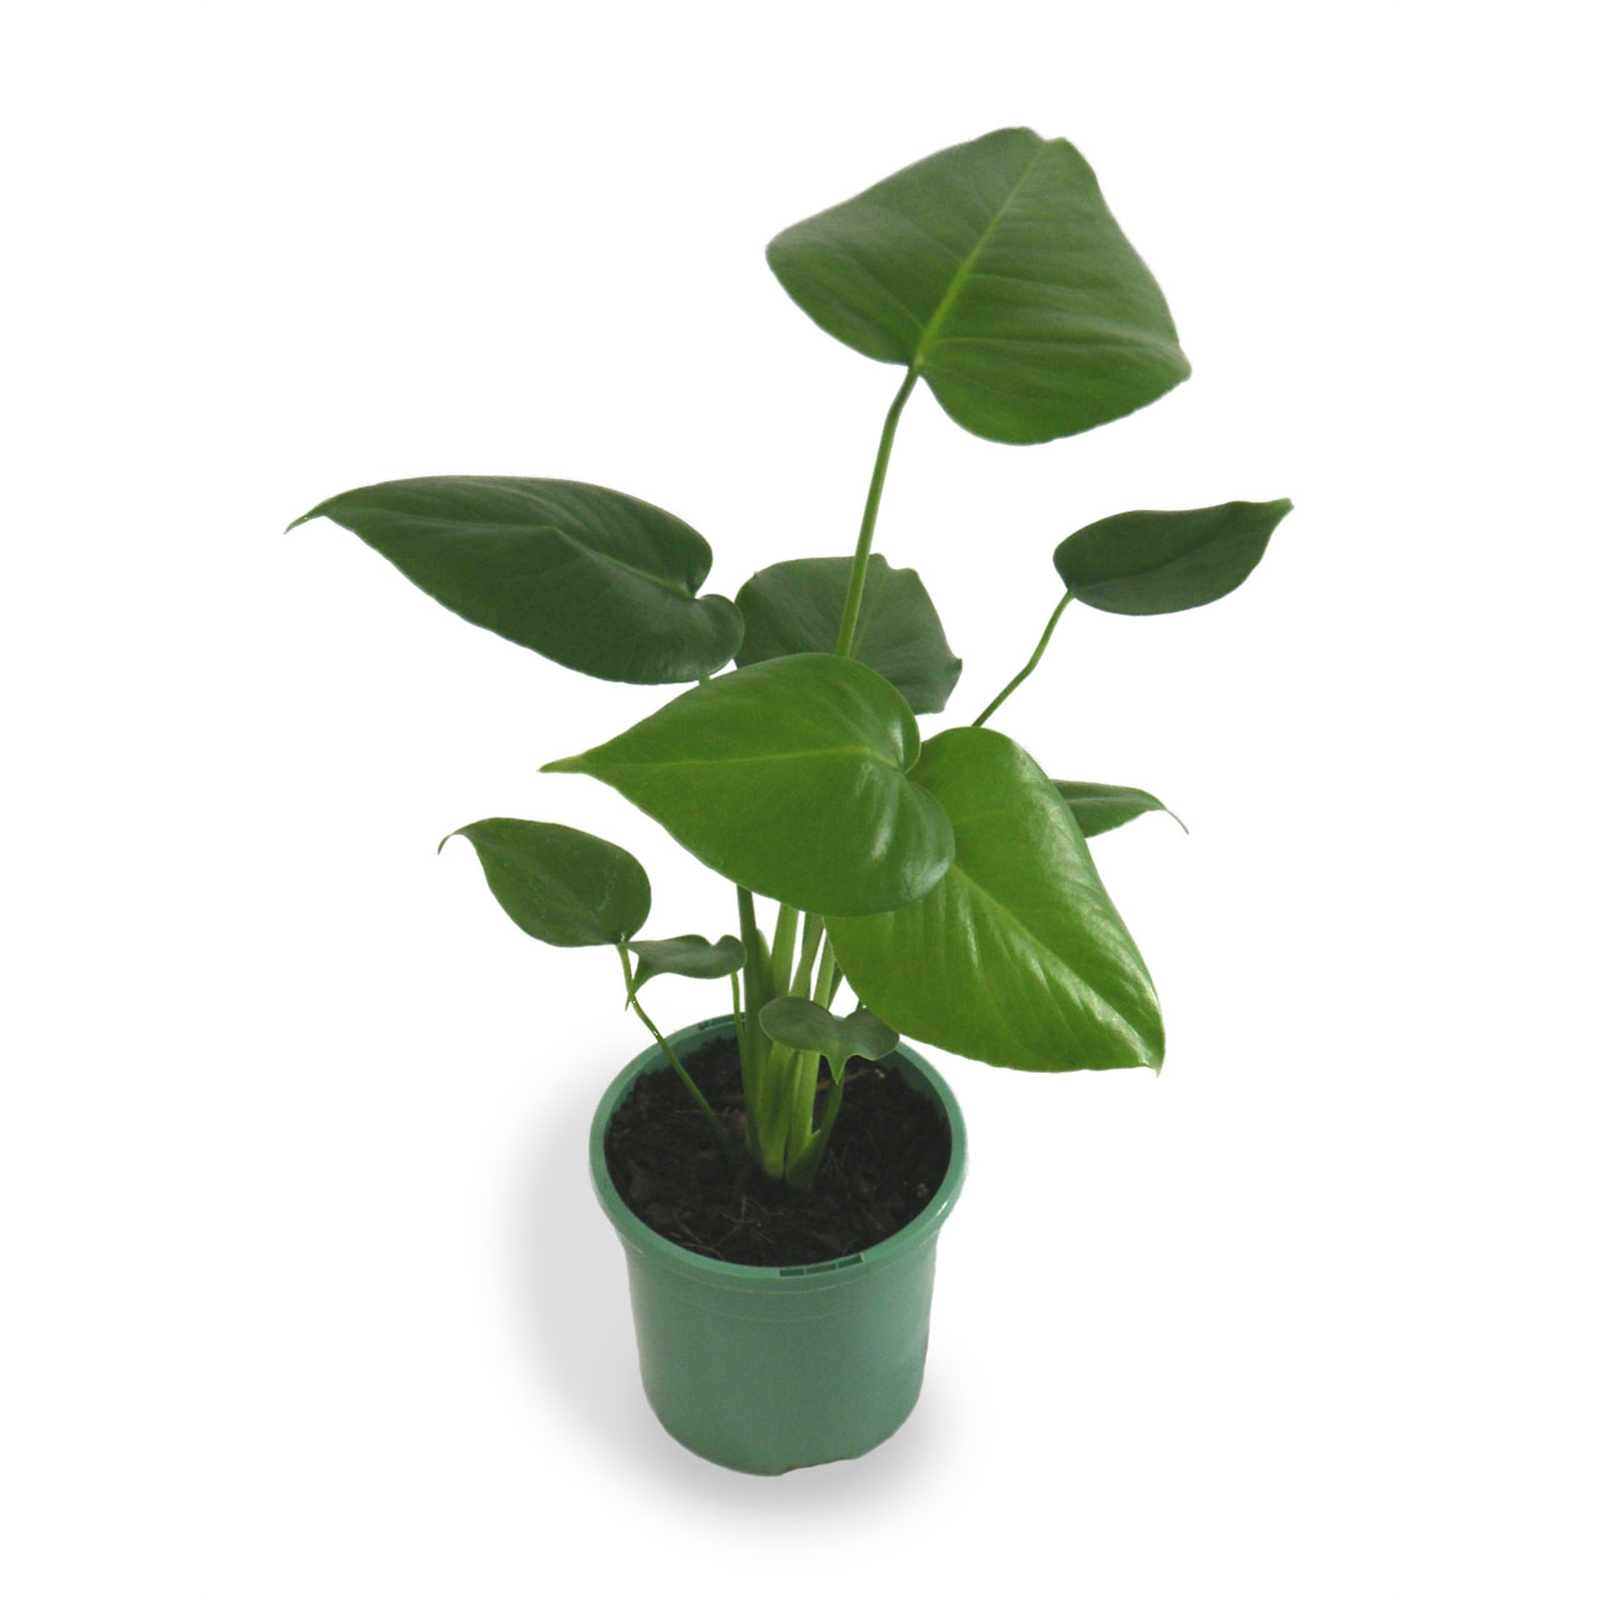 "You can use the spare change to buy a trendy indoor plant t pop in your plant stand, such as the **Fruit Salad Plant** or **Monstera deliciosa** from [Bunnings](https://www.bunnings.com.au/130mm-fruit-salad-plant-monstera-deliciosa_p3610589|target=""_blank""